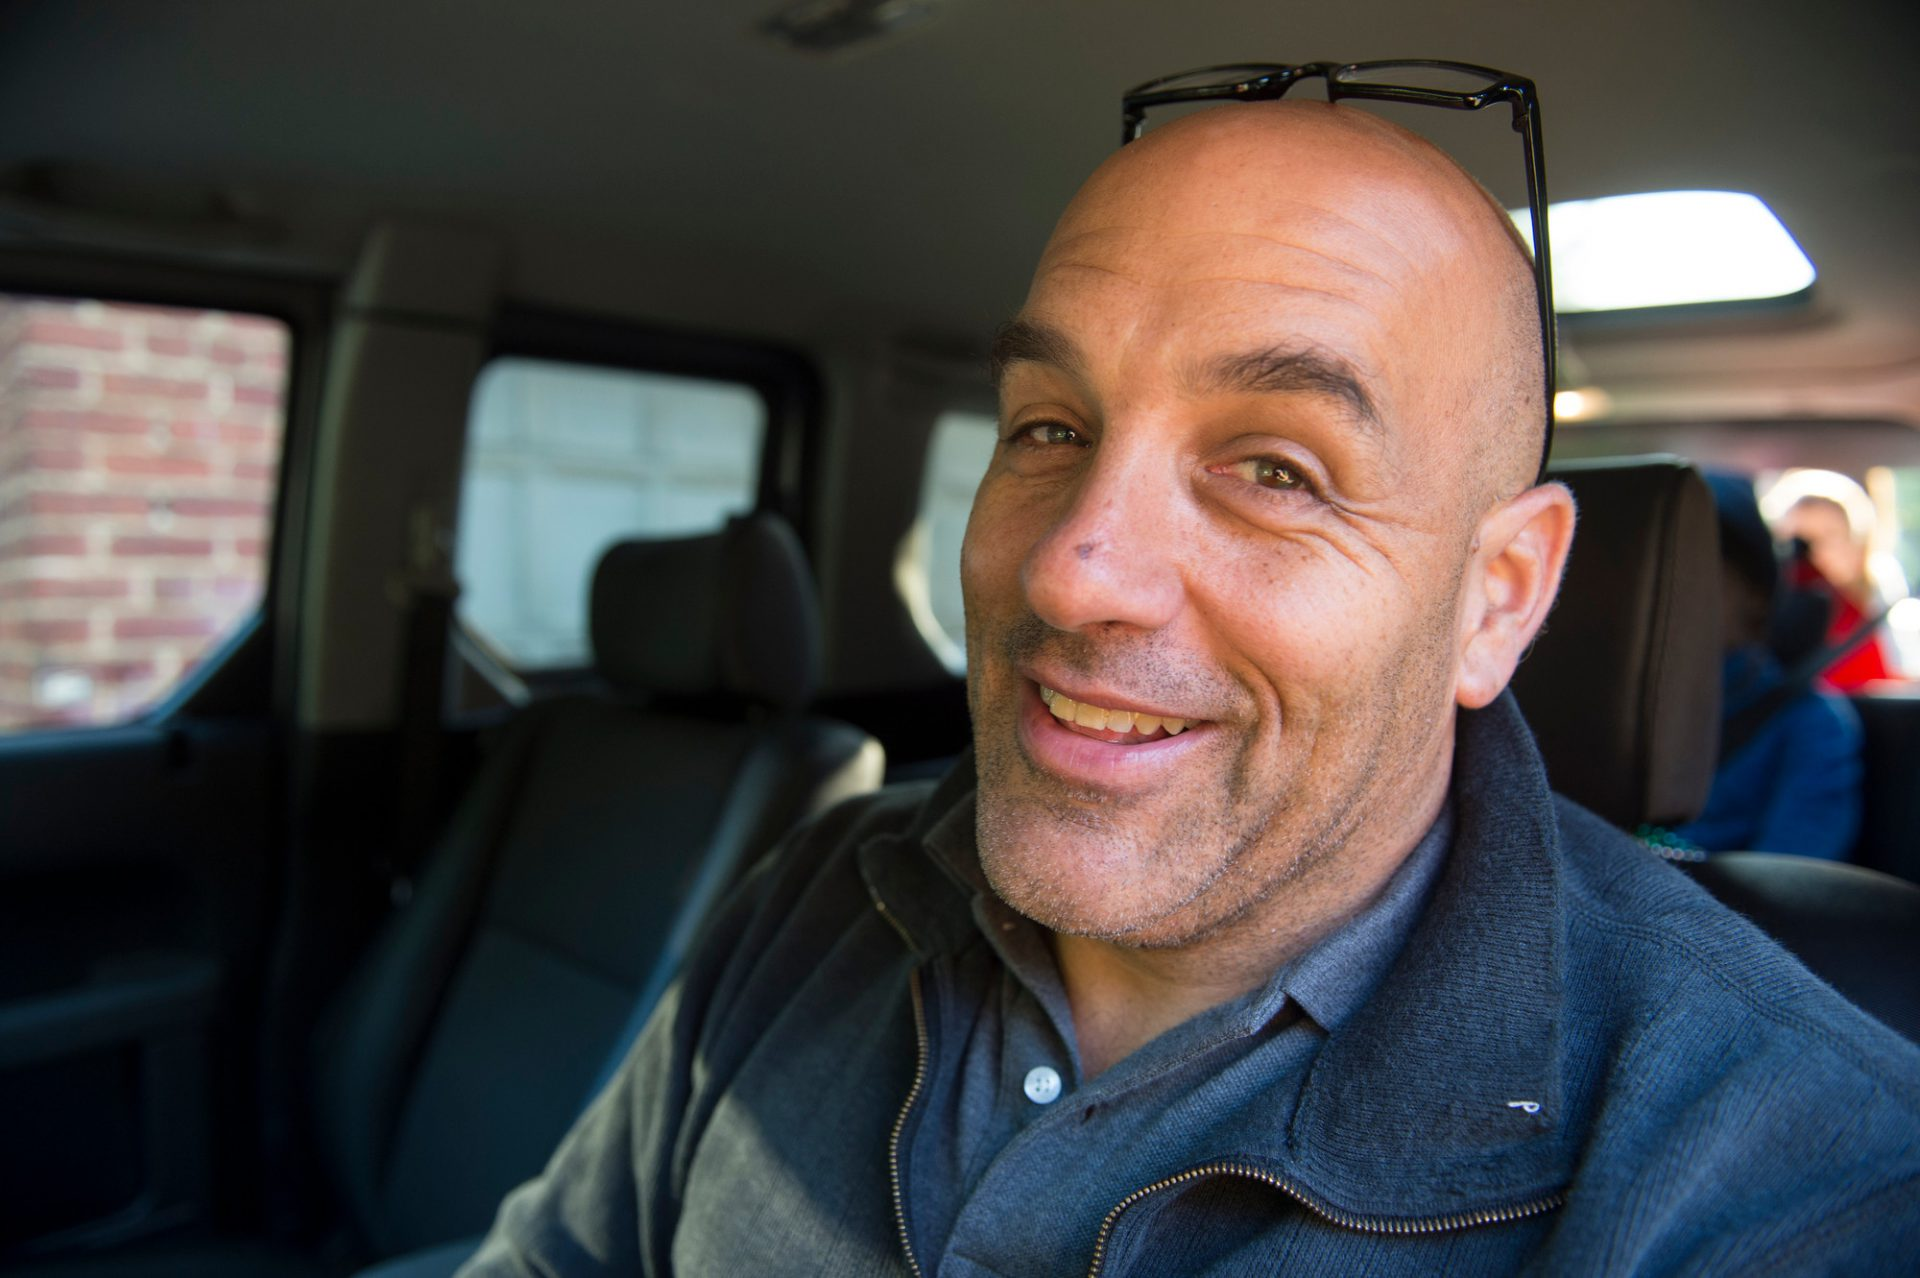 Photo: A man smiles in his vehicle.